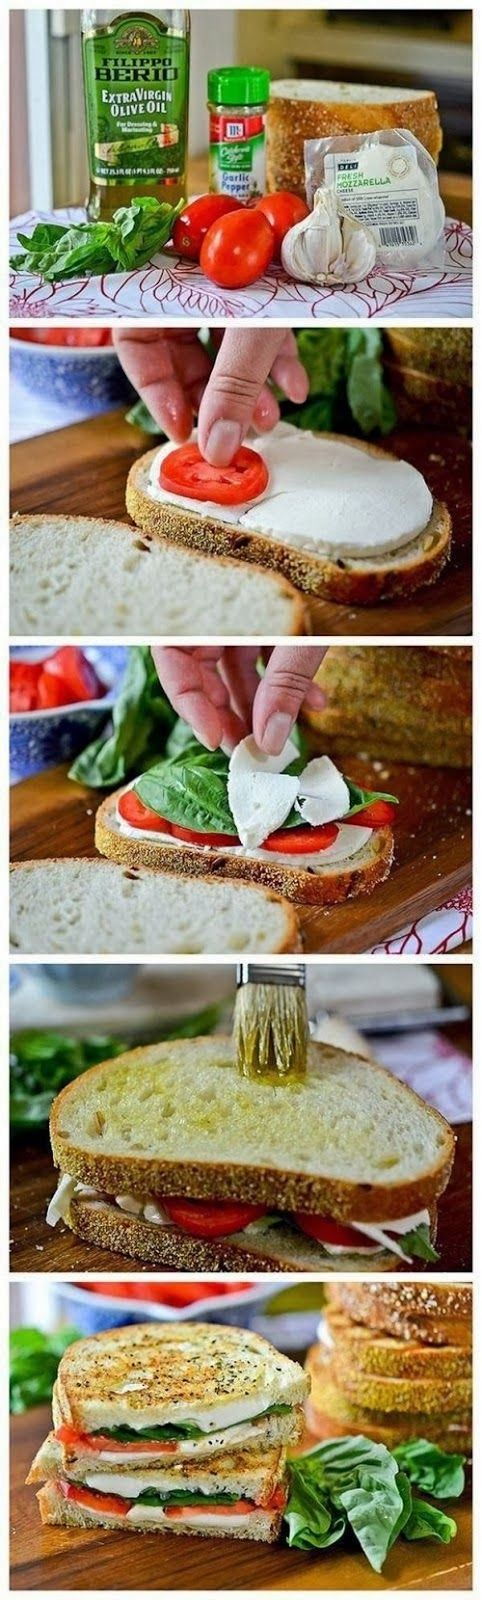 Grilled Margherita Sandwiches ~ Grilled Margherita Sandwiches. These are so, so good and really simple sandwiches to make